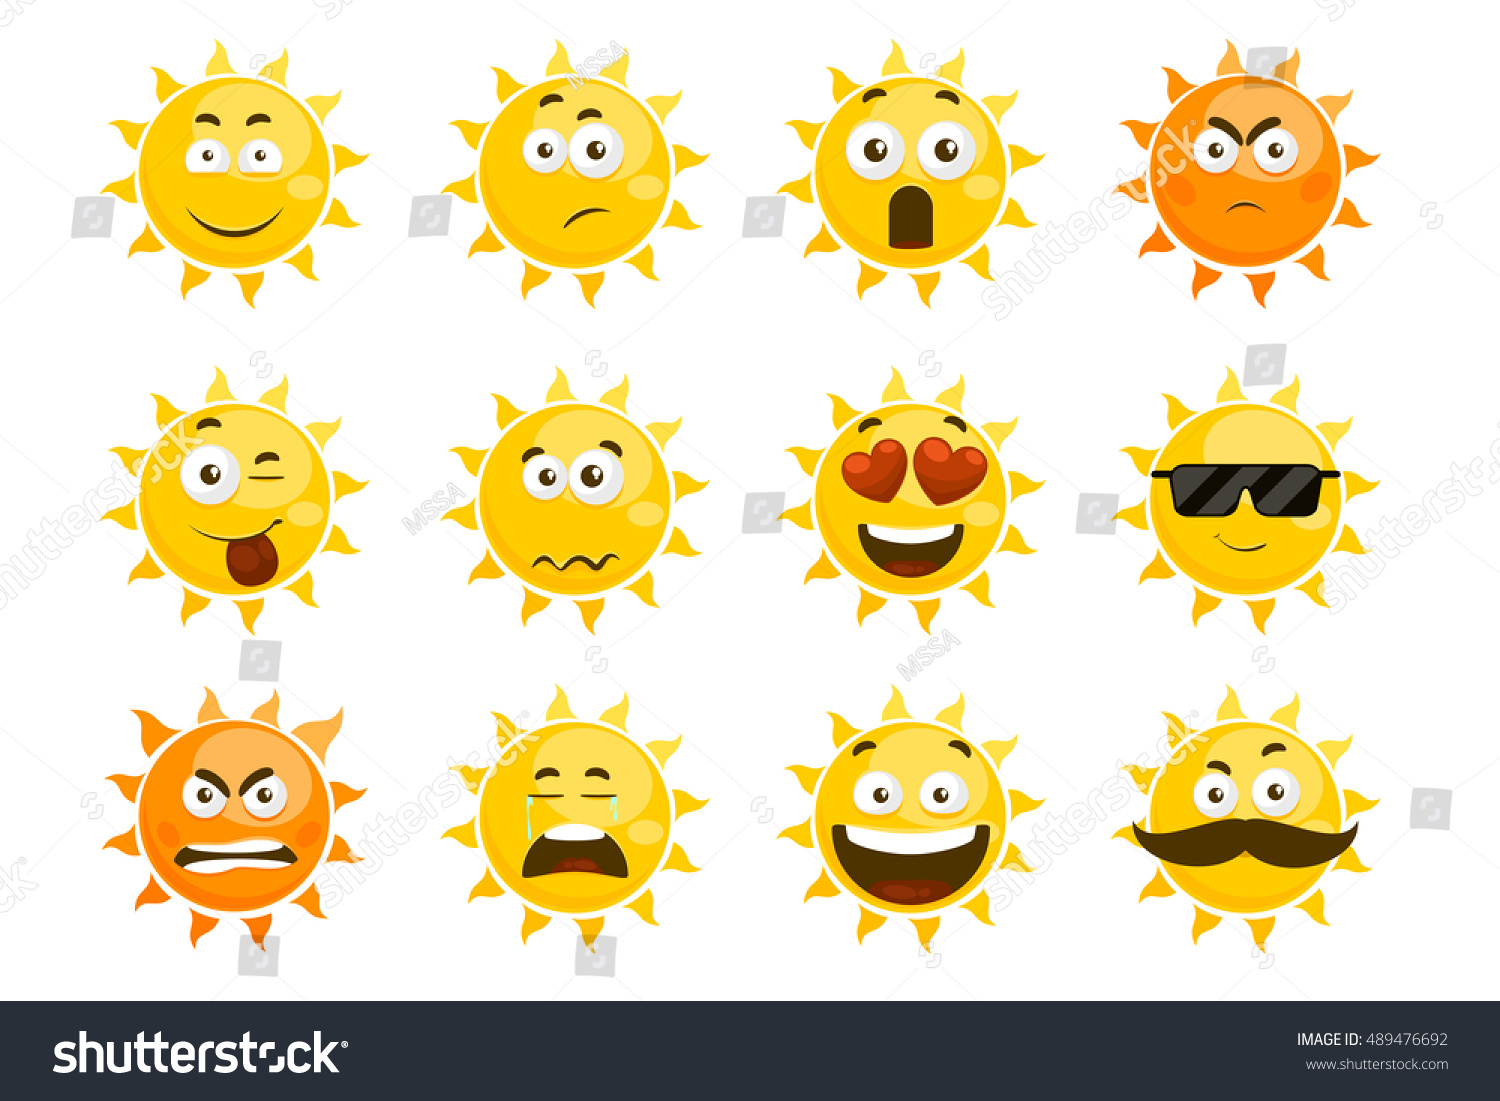 Smiling sun images - Smiling Sun Emoticons Vector Cartoon Smile Sun Set Cartoon Face Sun Illustration